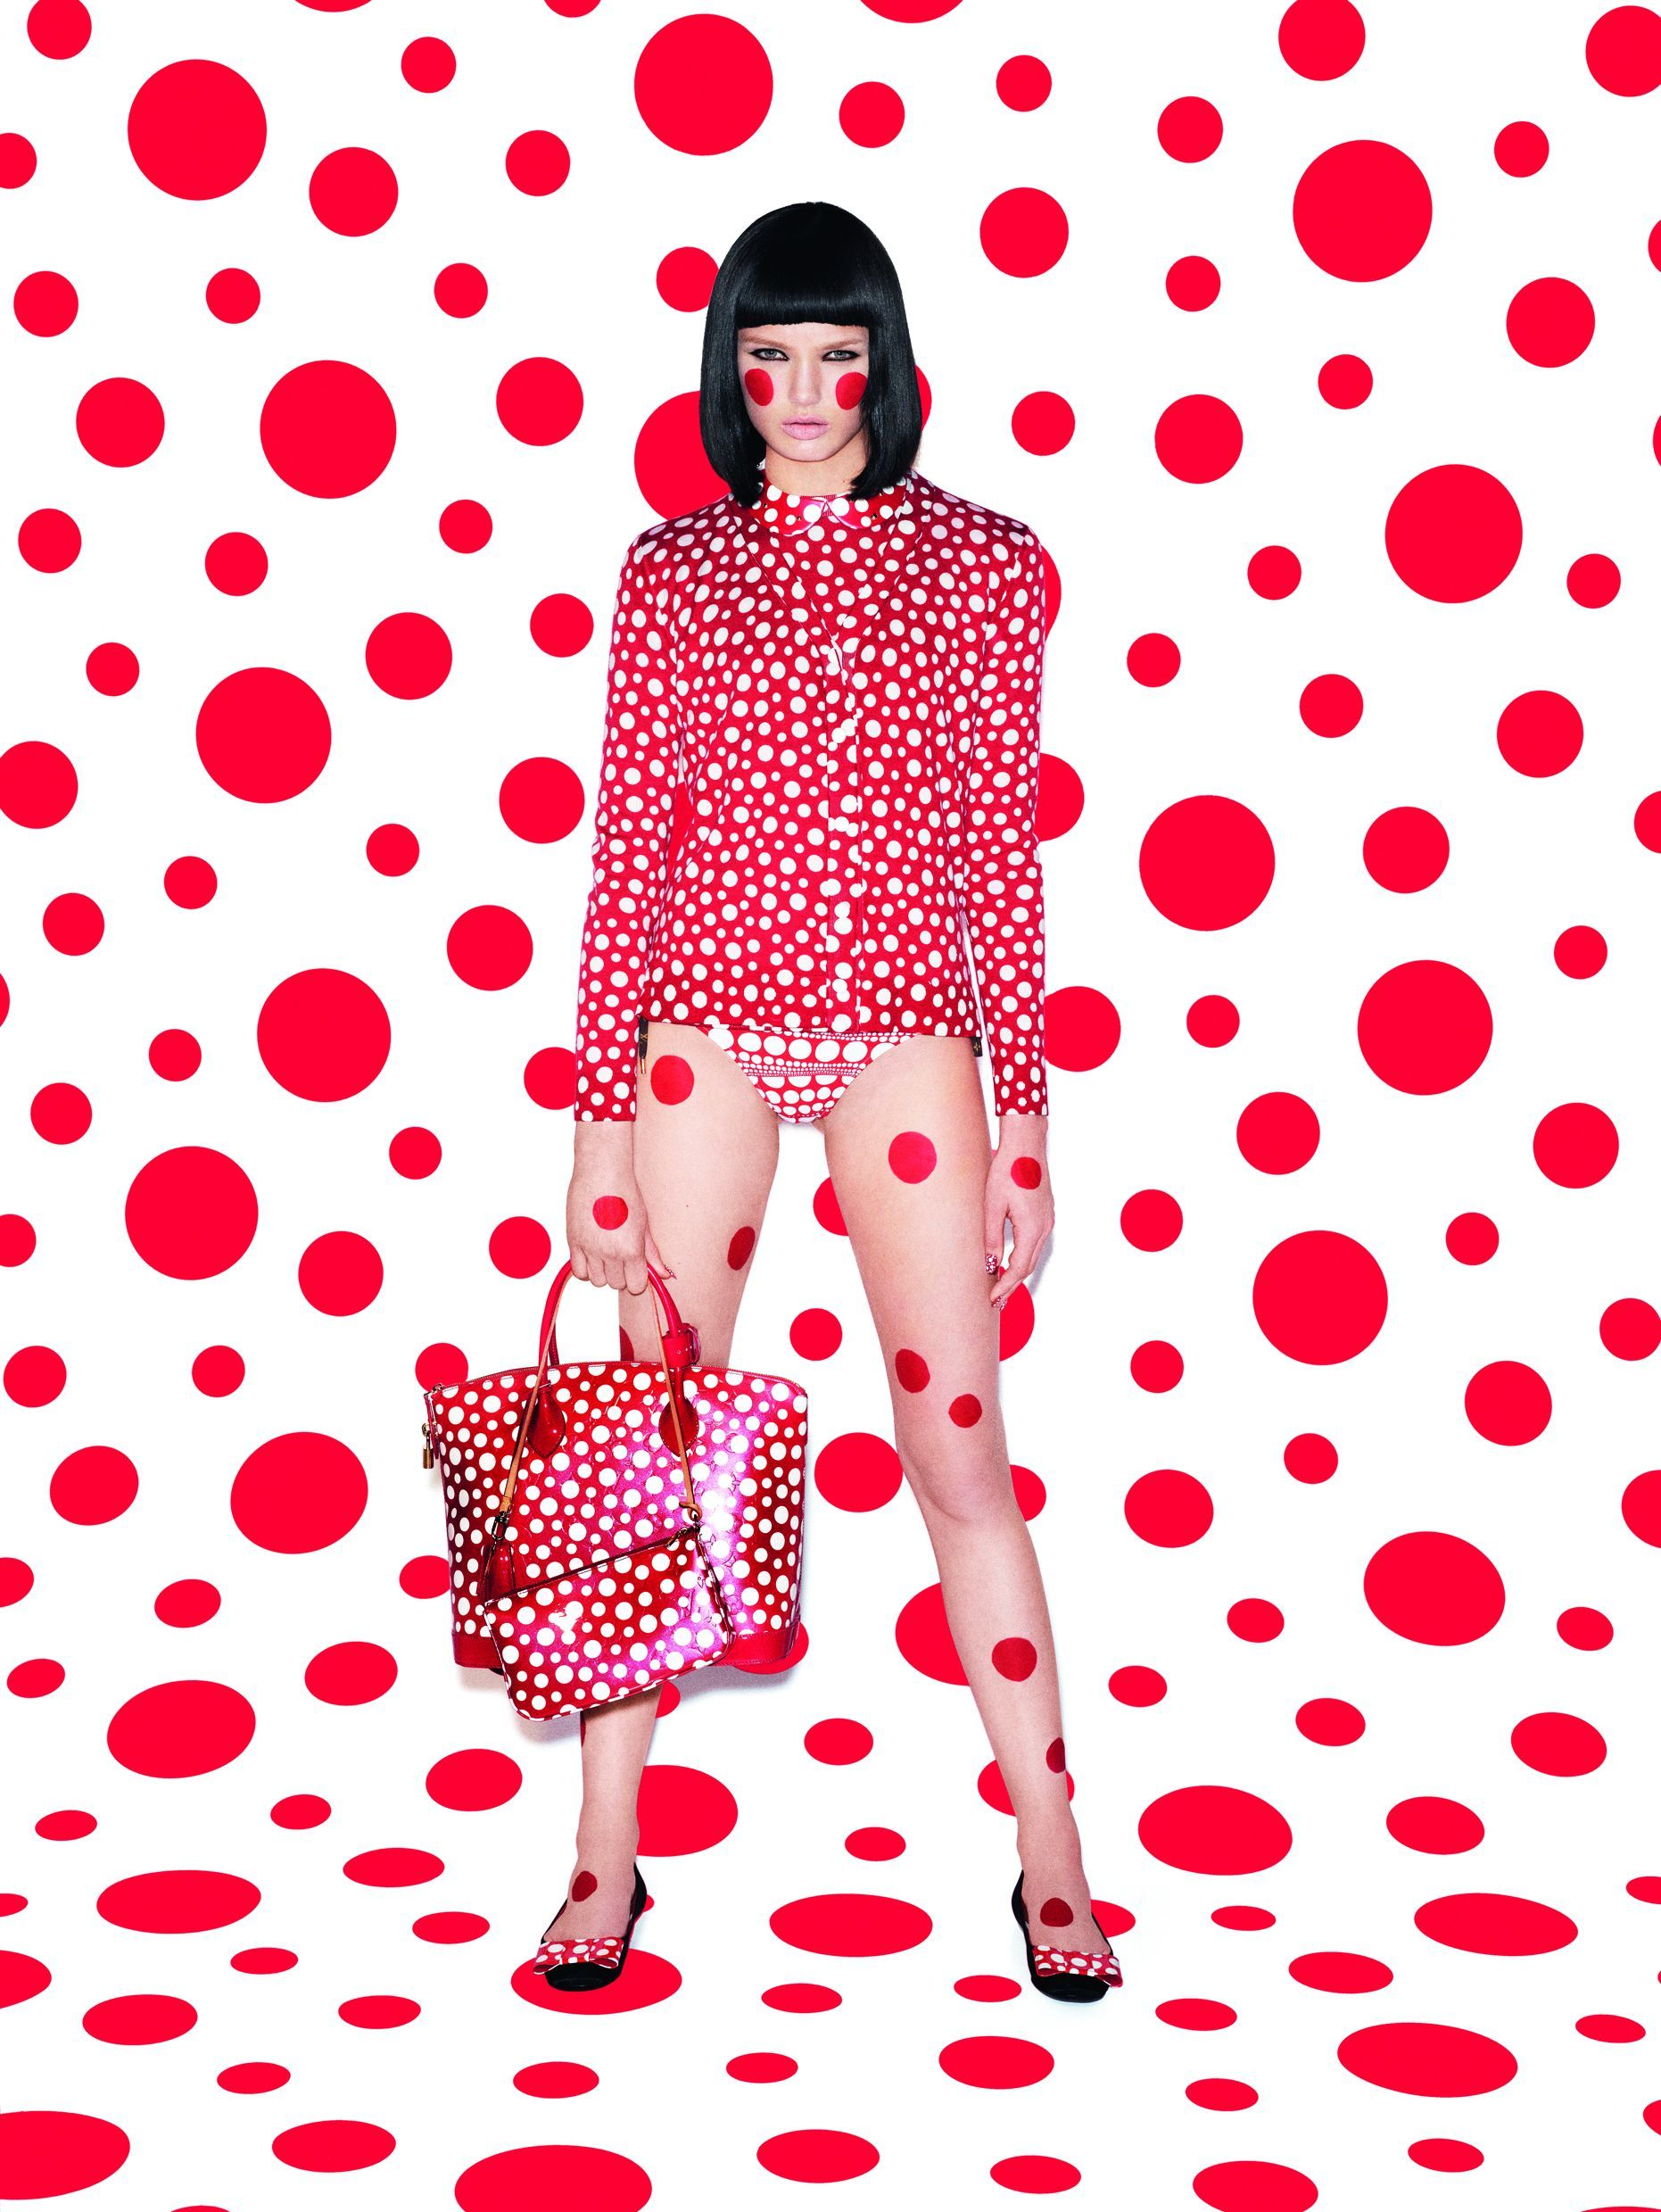 Yayoi Kusama for Louis Vuitton Accessories Collection